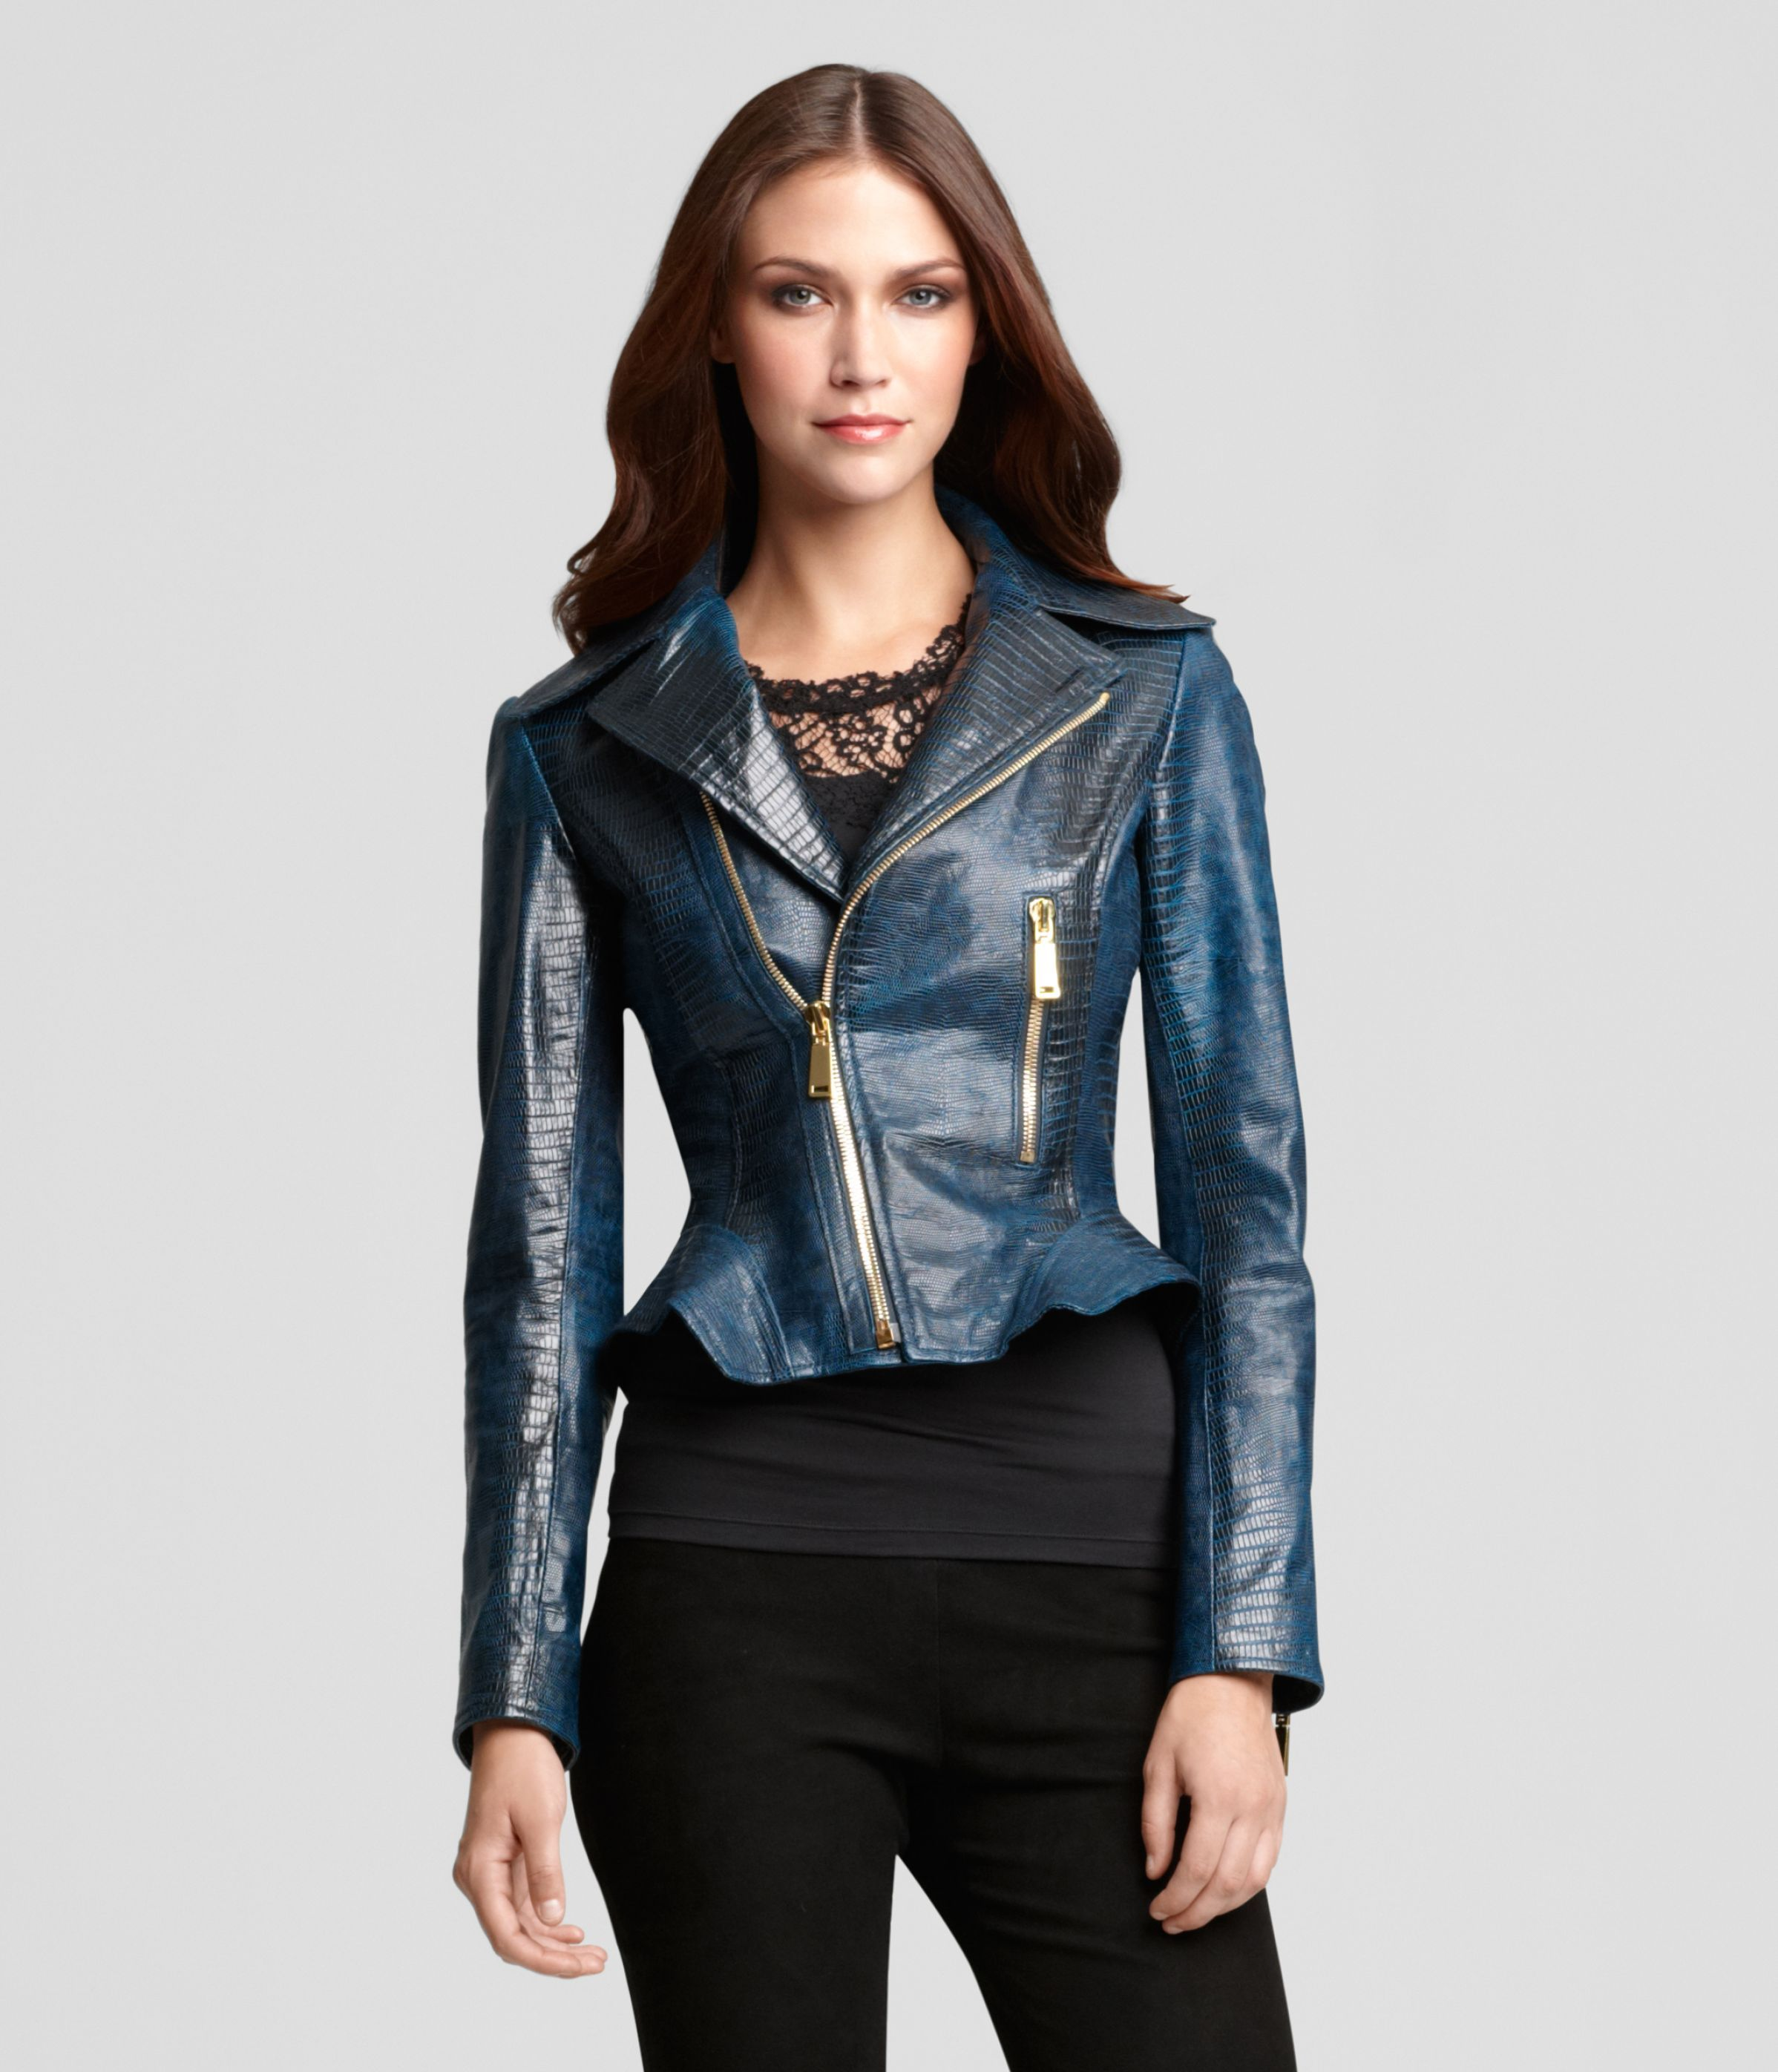 And This Yes I Want This Elie Tahari Leather Jacket Too Bad It Costs The Equivalent Of A Paychec Outerwear Women Designer Outfits Woman Coats Jackets Women [ 2792 x 2396 Pixel ]